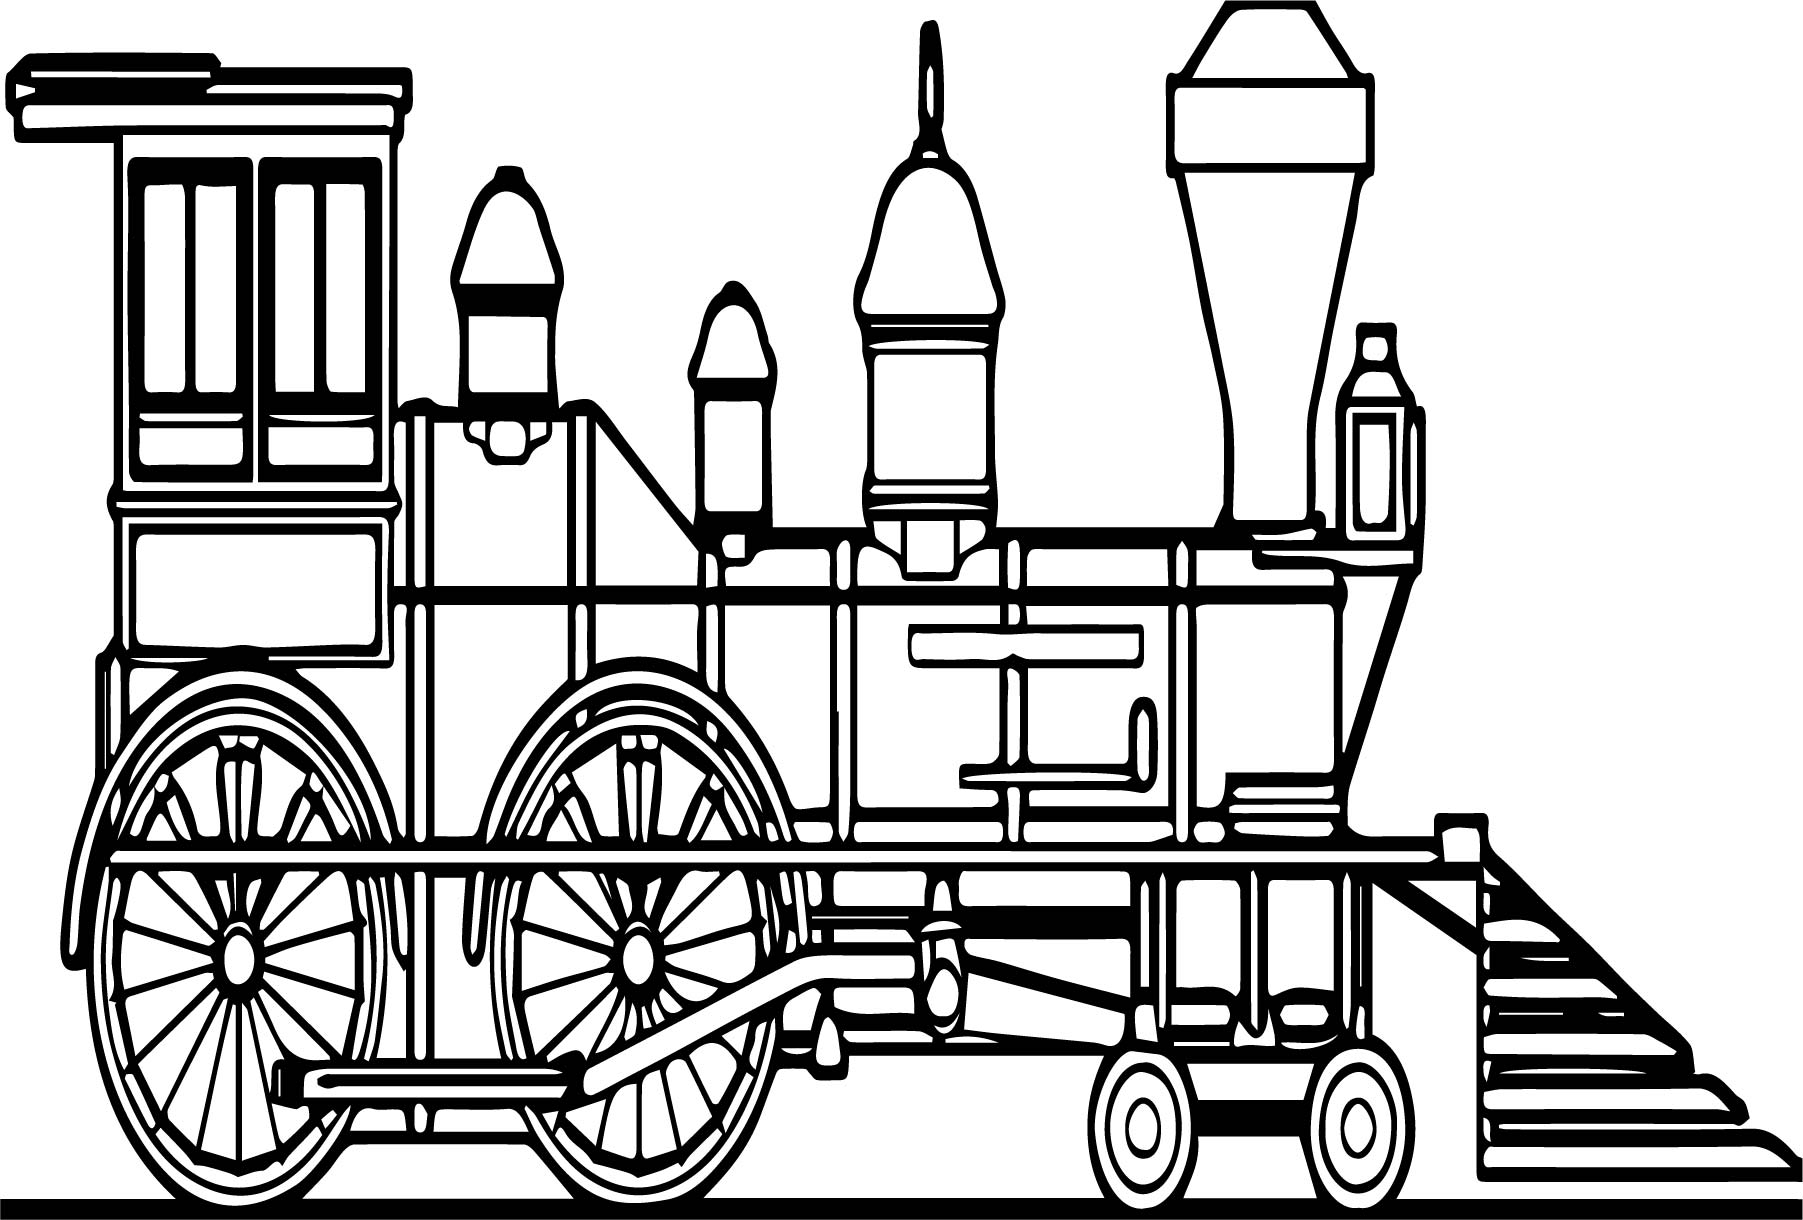 Steam engine train black and white imageresizertool com for Coloring page of a train